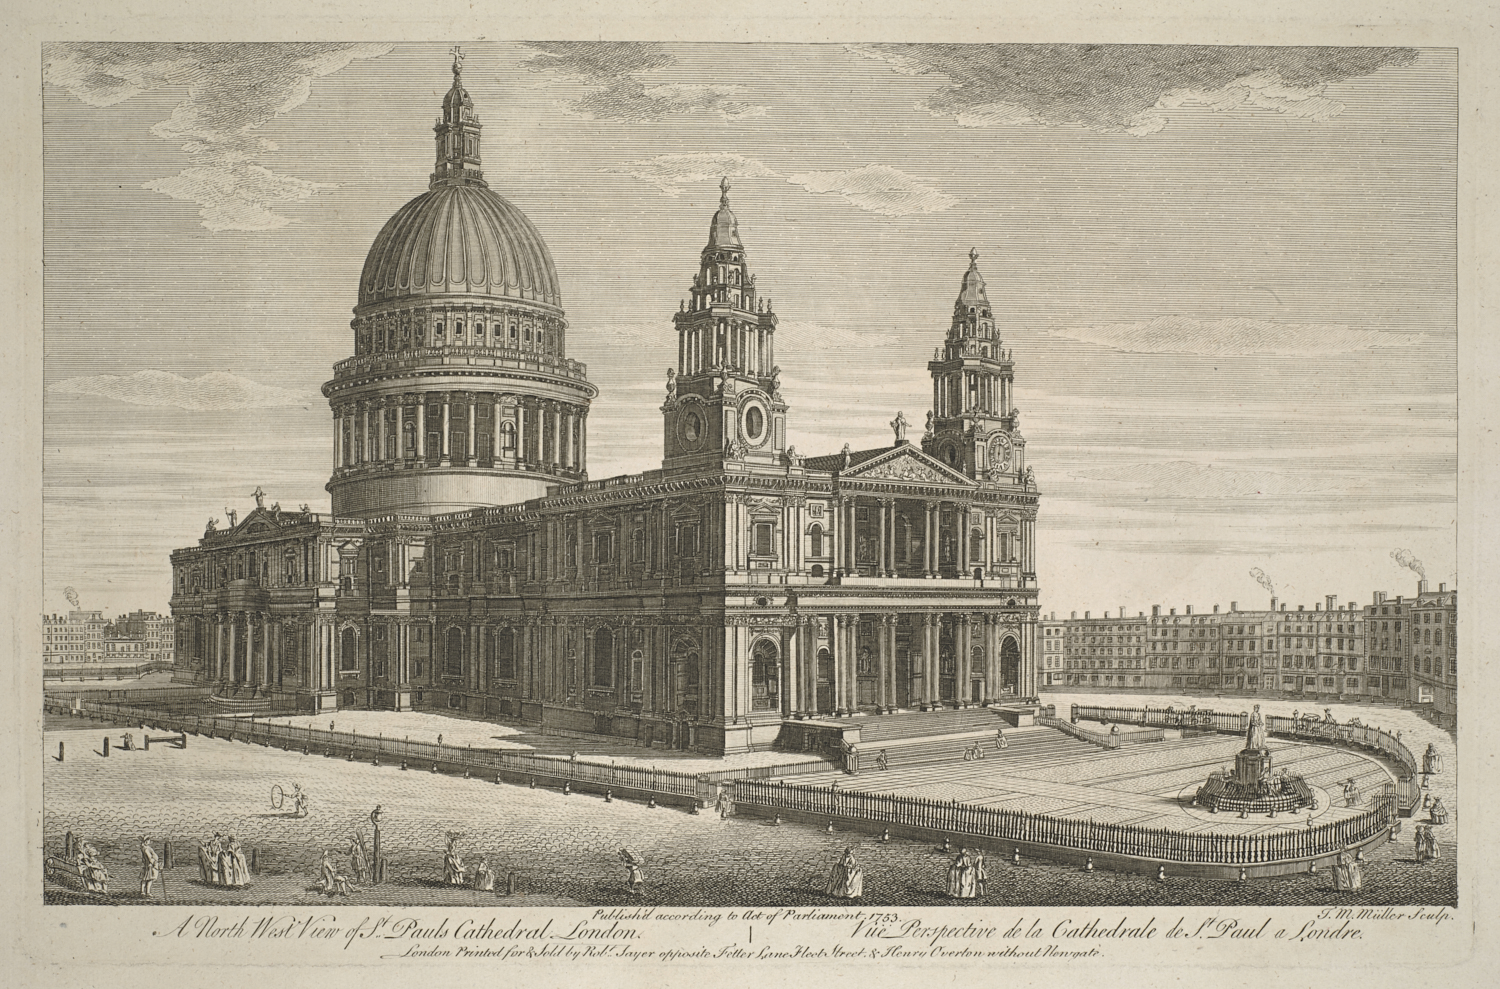 A North West View of St. Paul's Cathedral, London = Vüe Perspective de la Cathedrale de St Paul a Londre. / J.M. Müller sculp. Johann Sebastian Müller, 1715-1790?, printmaker. London : Printed for & Sold by Rob.t Sayer opposite Fetter Lane Fleet Street & Henry Overton without Newgate. Publish'd according to Act of Parliament, 1753.